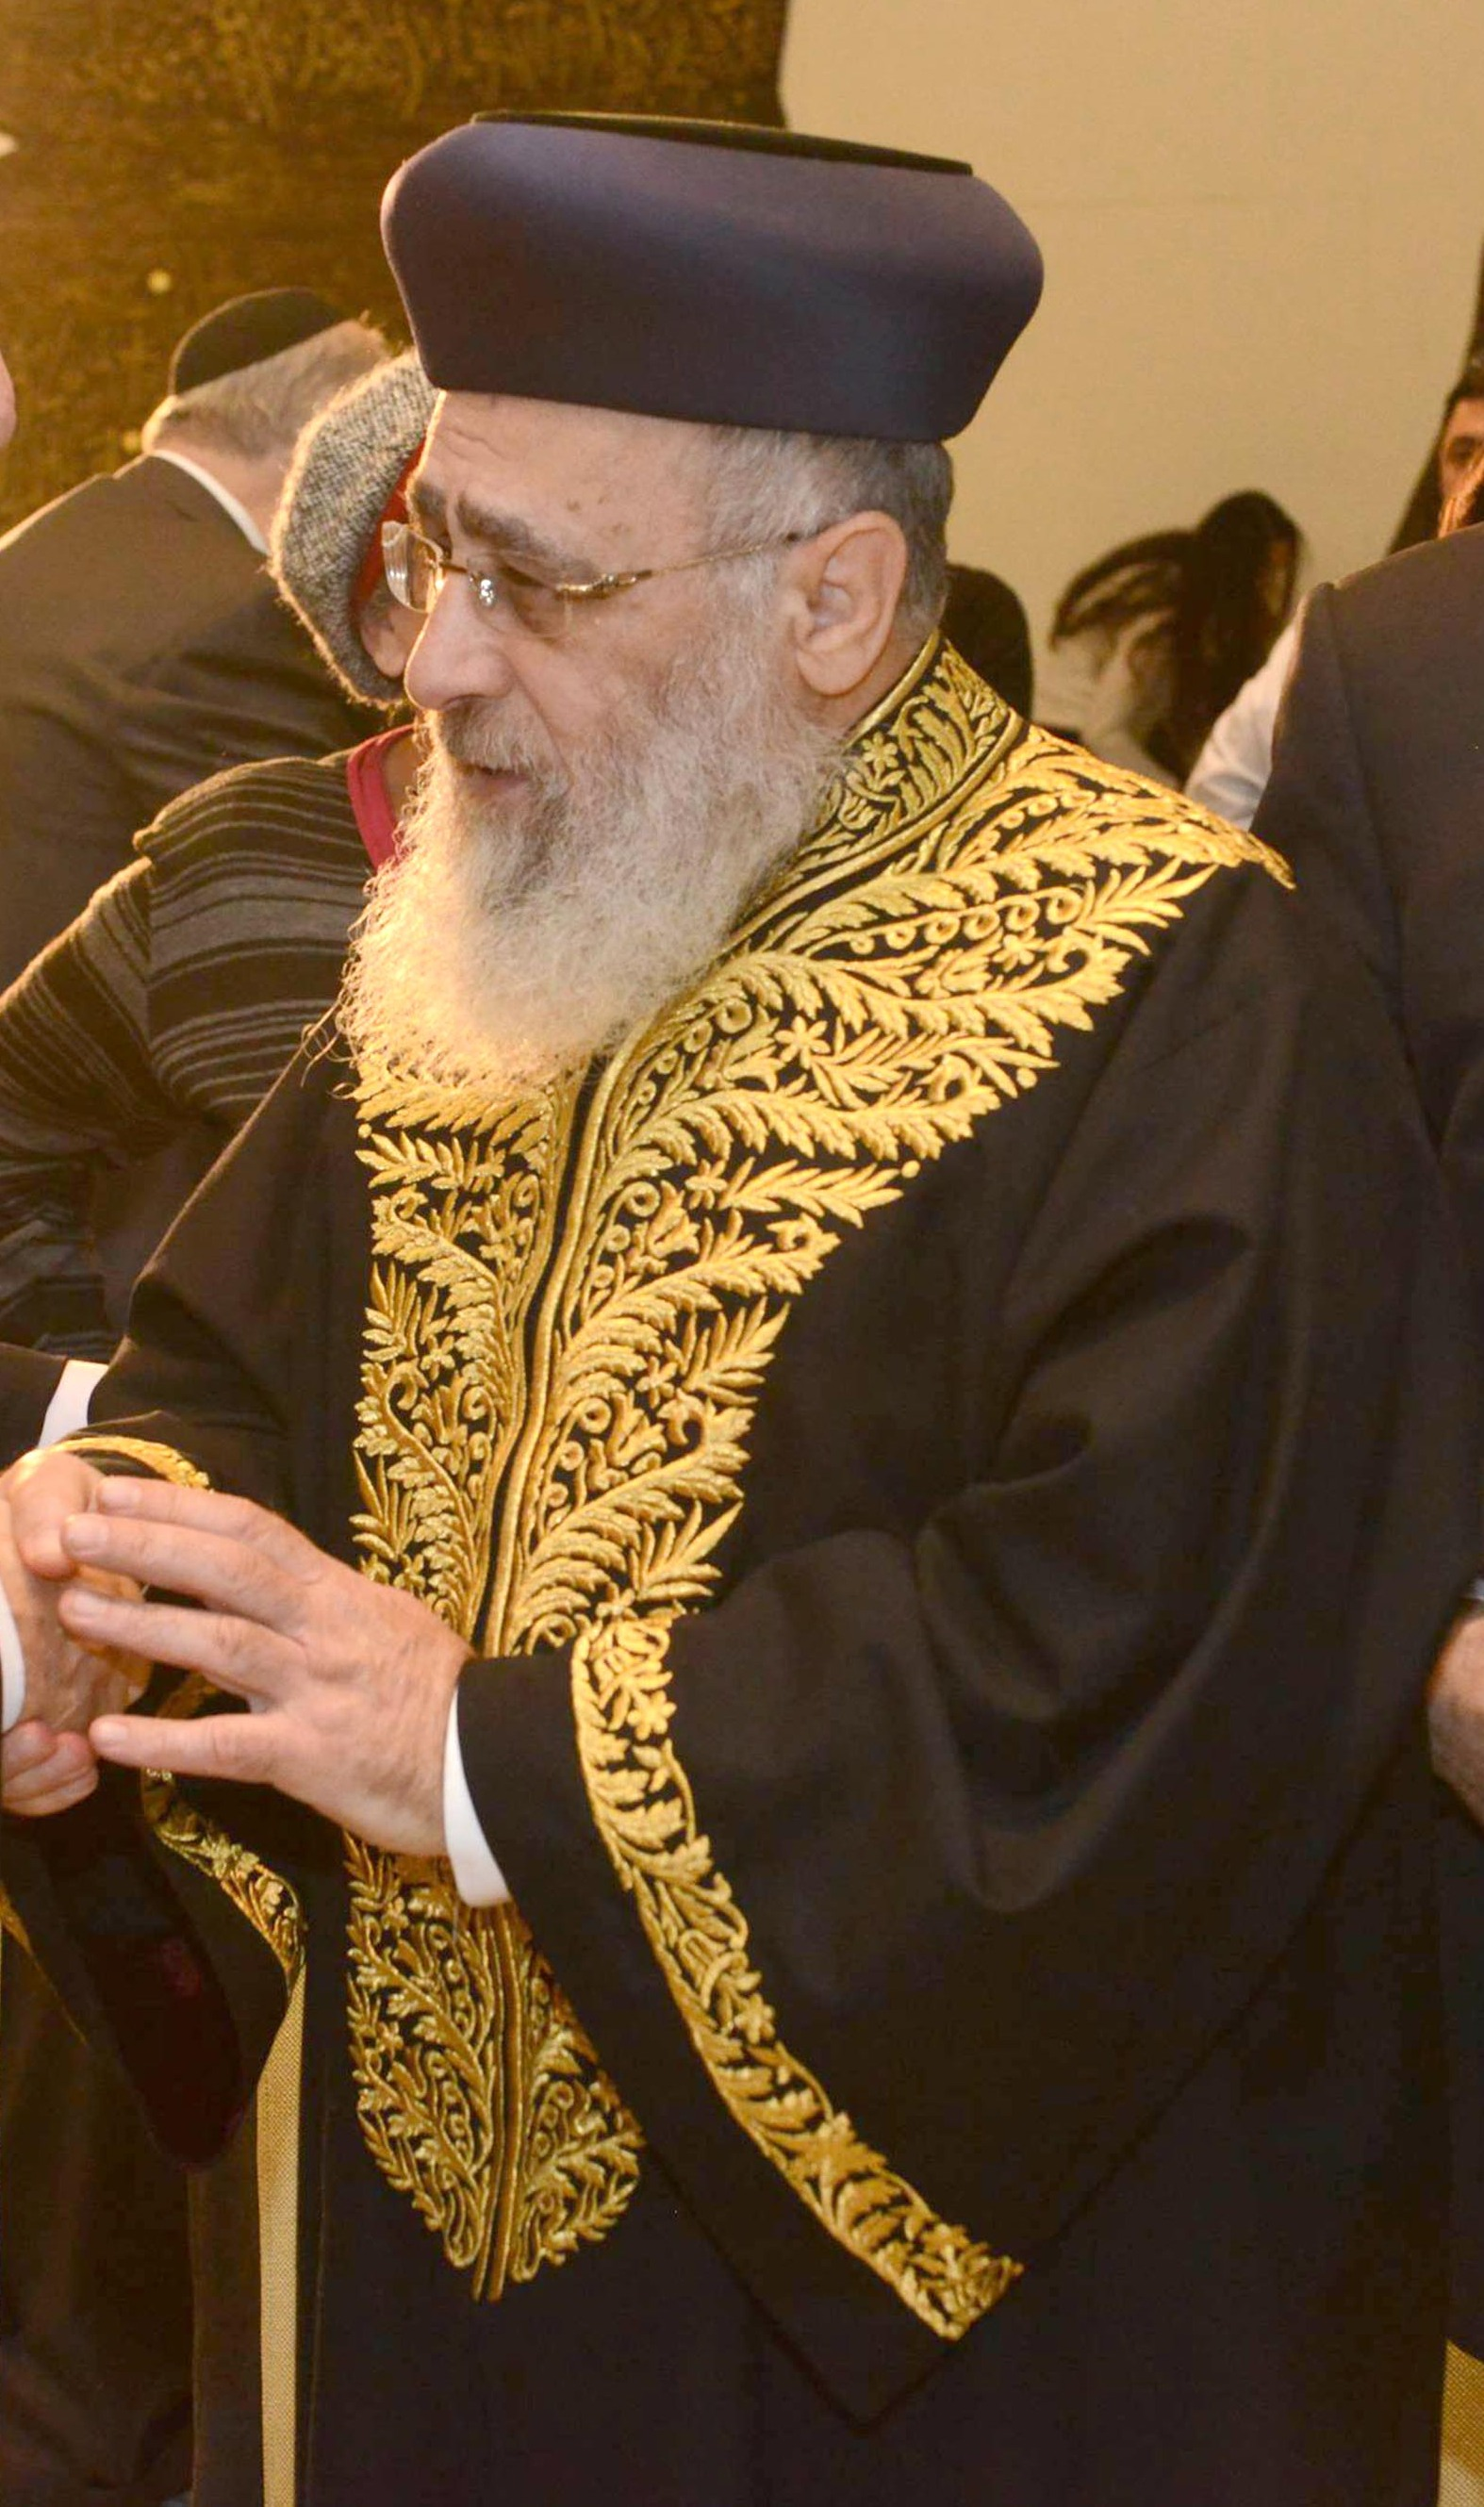 Der sephardische Großrabbiner Yitzhak Yosef. (Quelle: Government Press Office of Israel - Mark Nayman via Wikimedia Commons unter Lizenz CC-BY-SA 3.0)